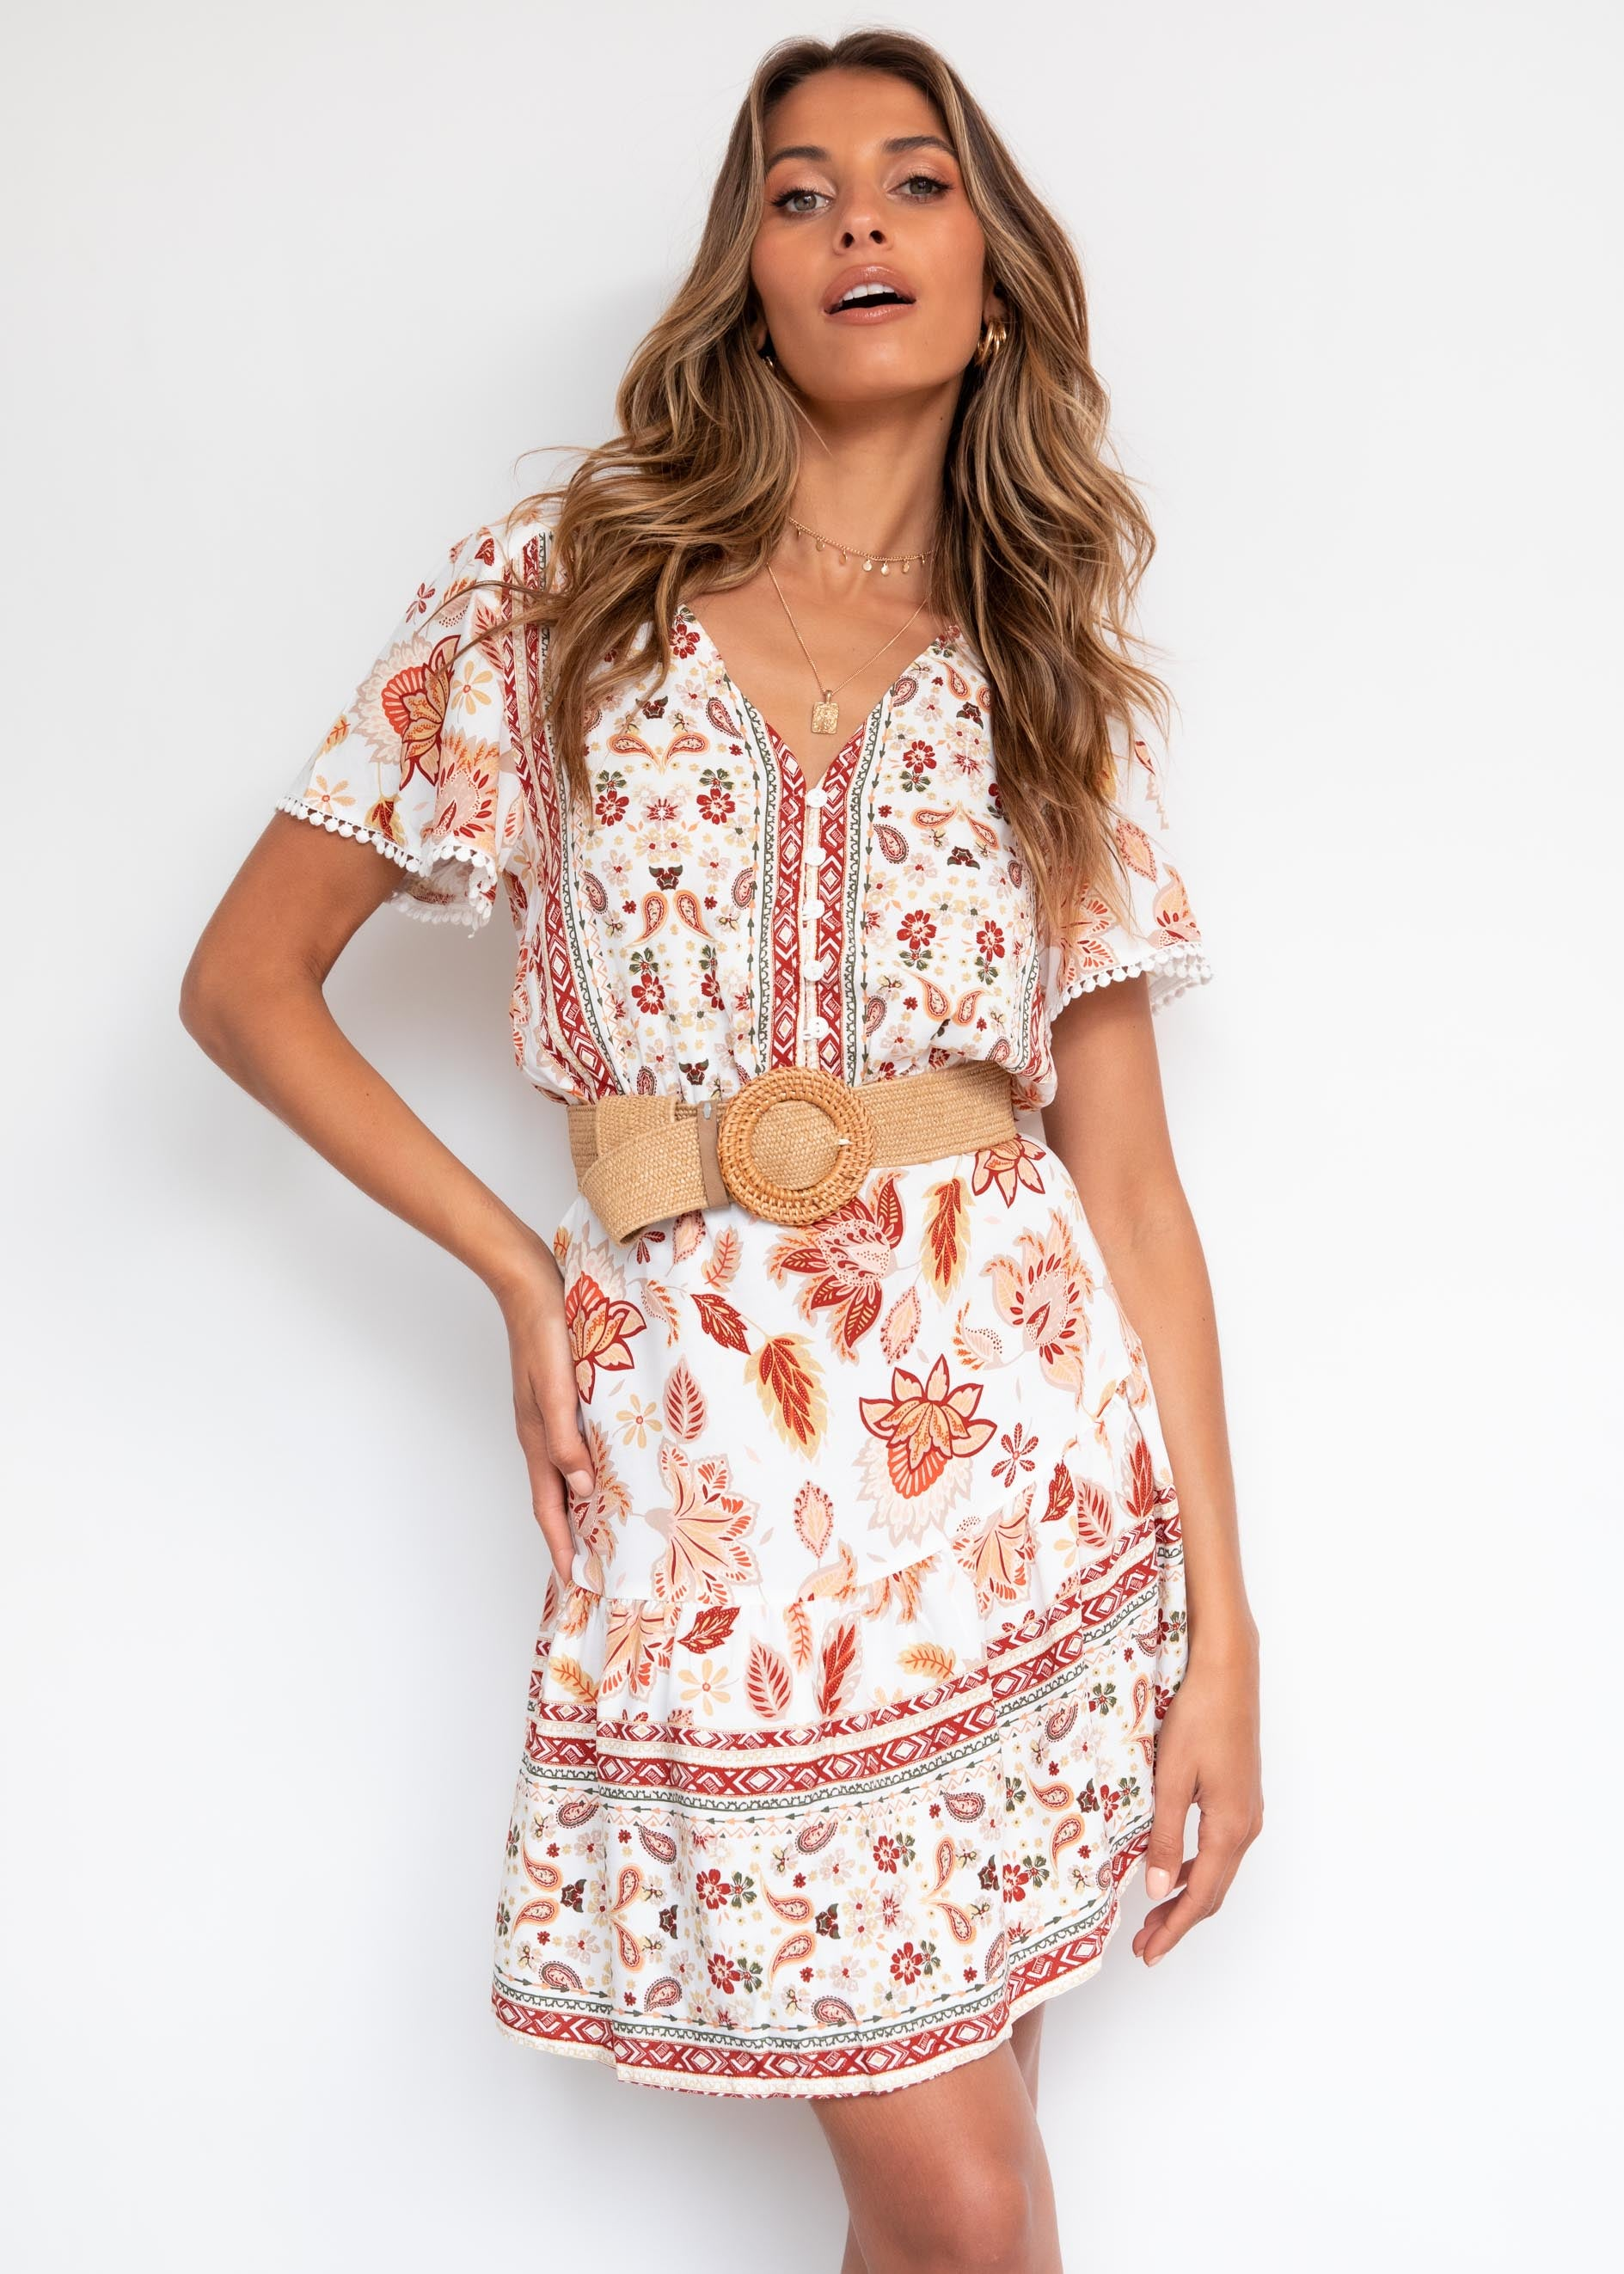 In My Eyes Dress - Autumn Floral